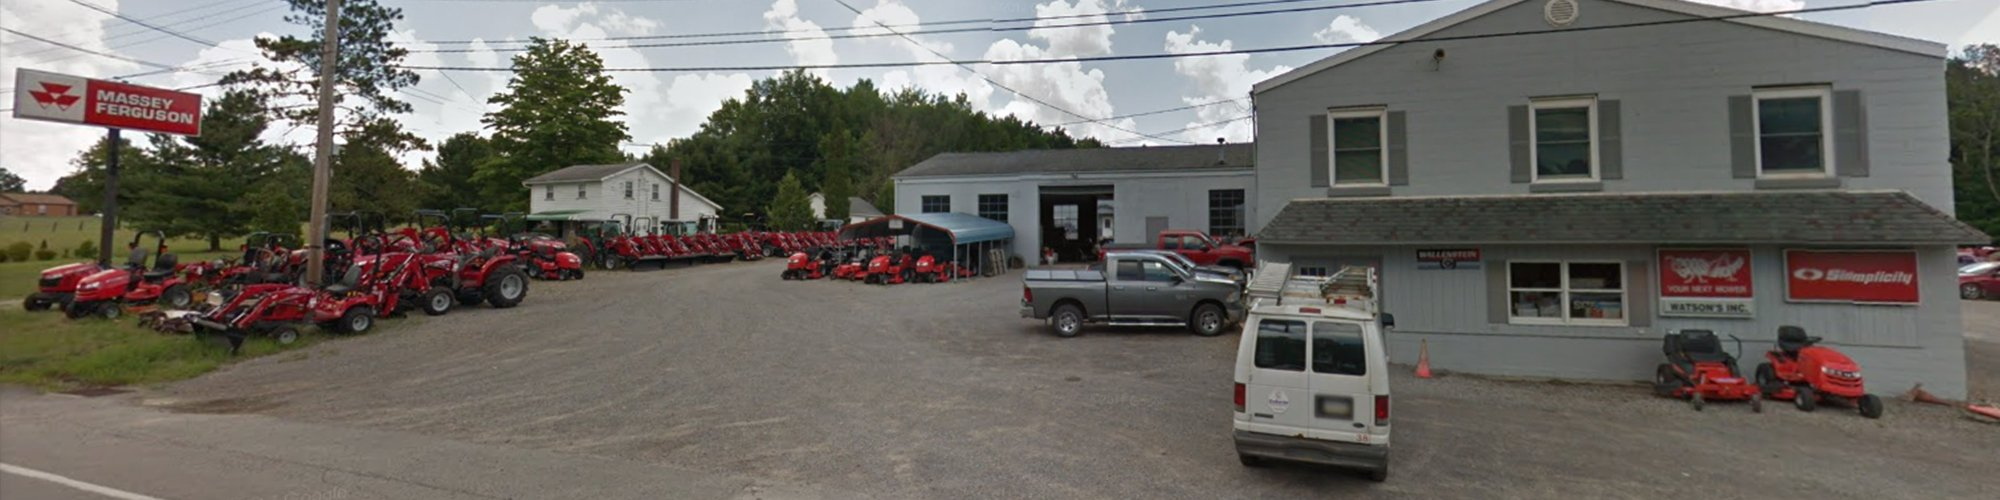 Watson's Inc    Hermitage, PA   New and Used Agriculture and